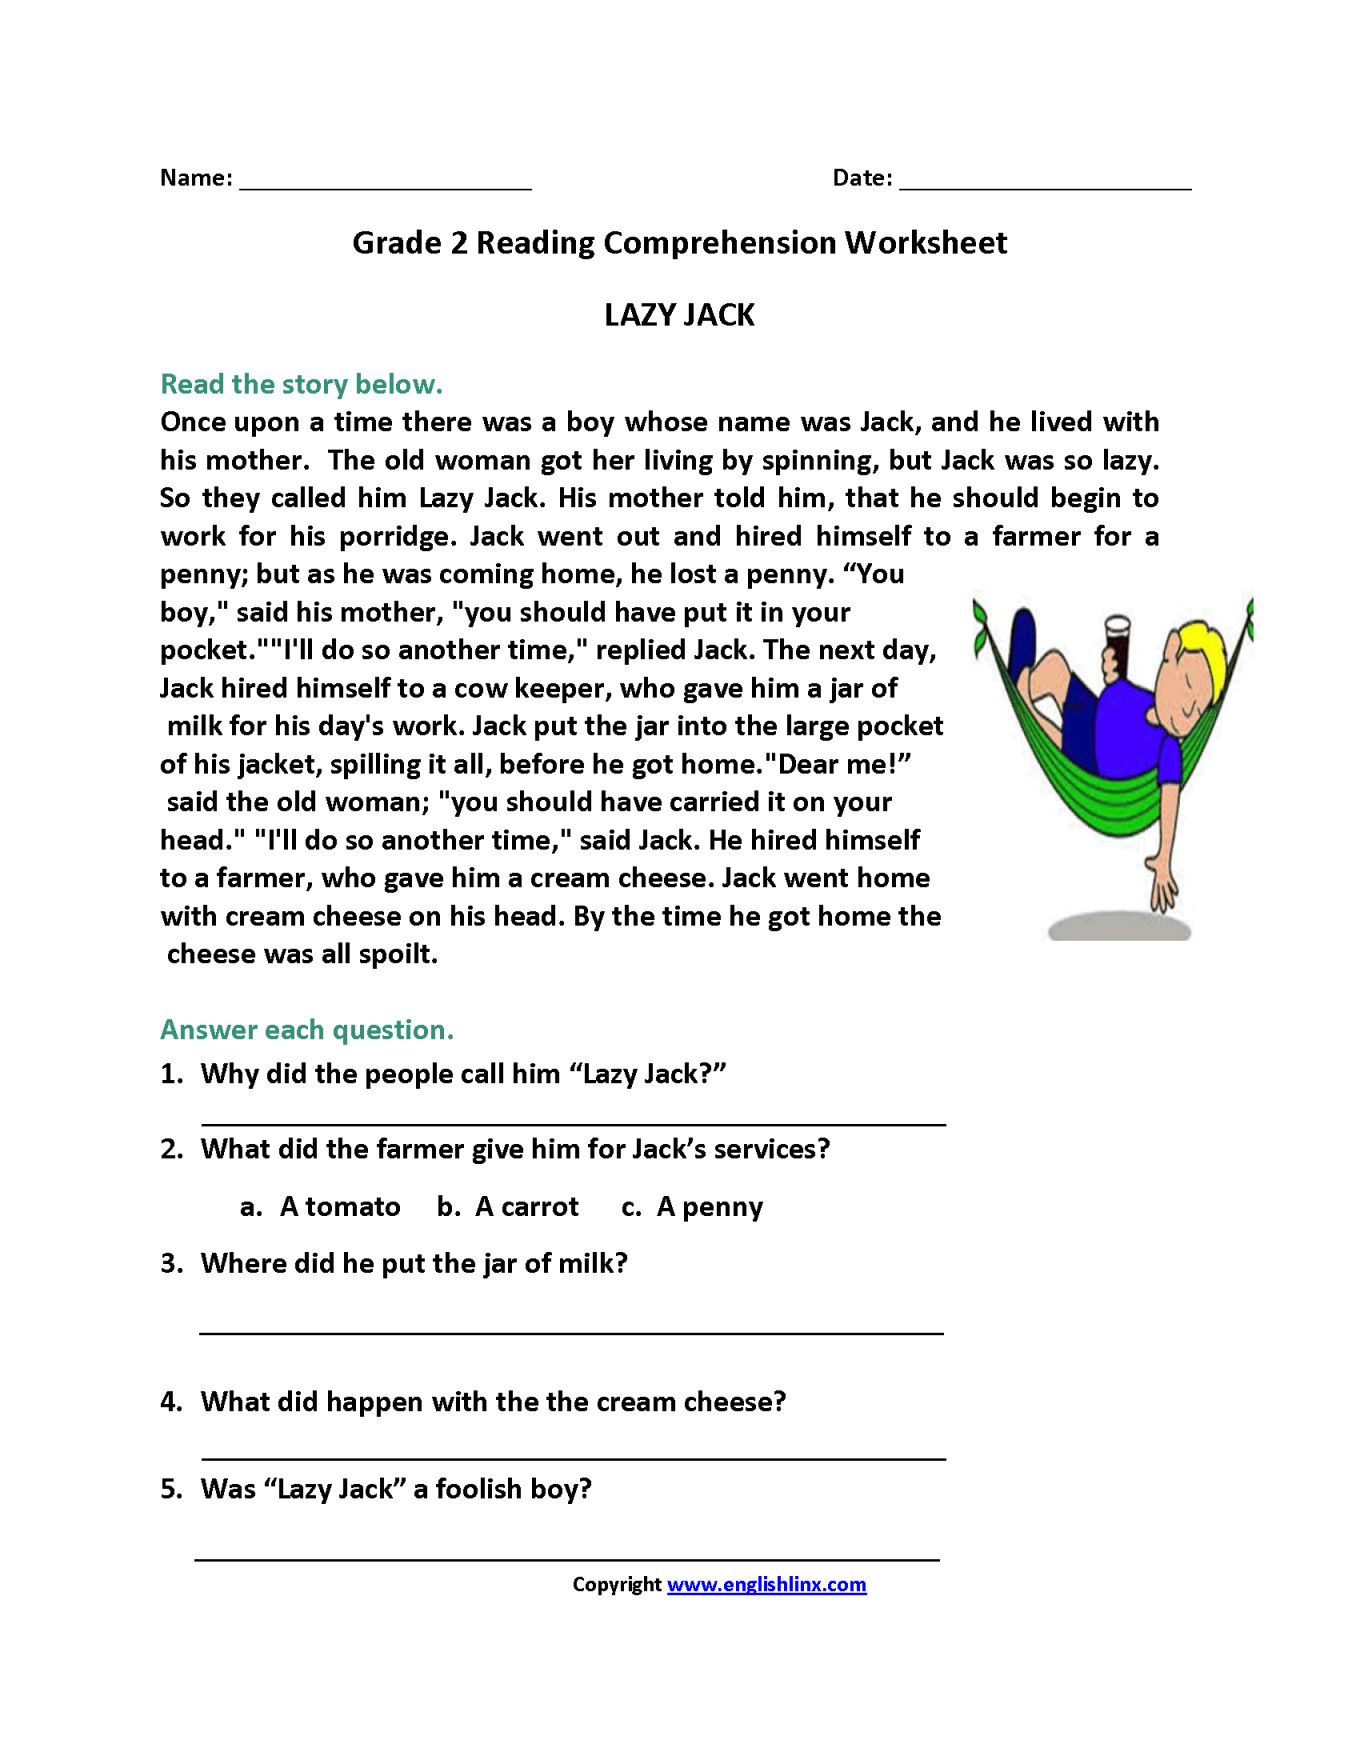 4 Free Math Worksheets Second Grade 2 Multiplication Multiplication Table 2 In 2020 Reading Comprehension Worksheets 2nd Grade Reading Worksheets Reading Comprehension